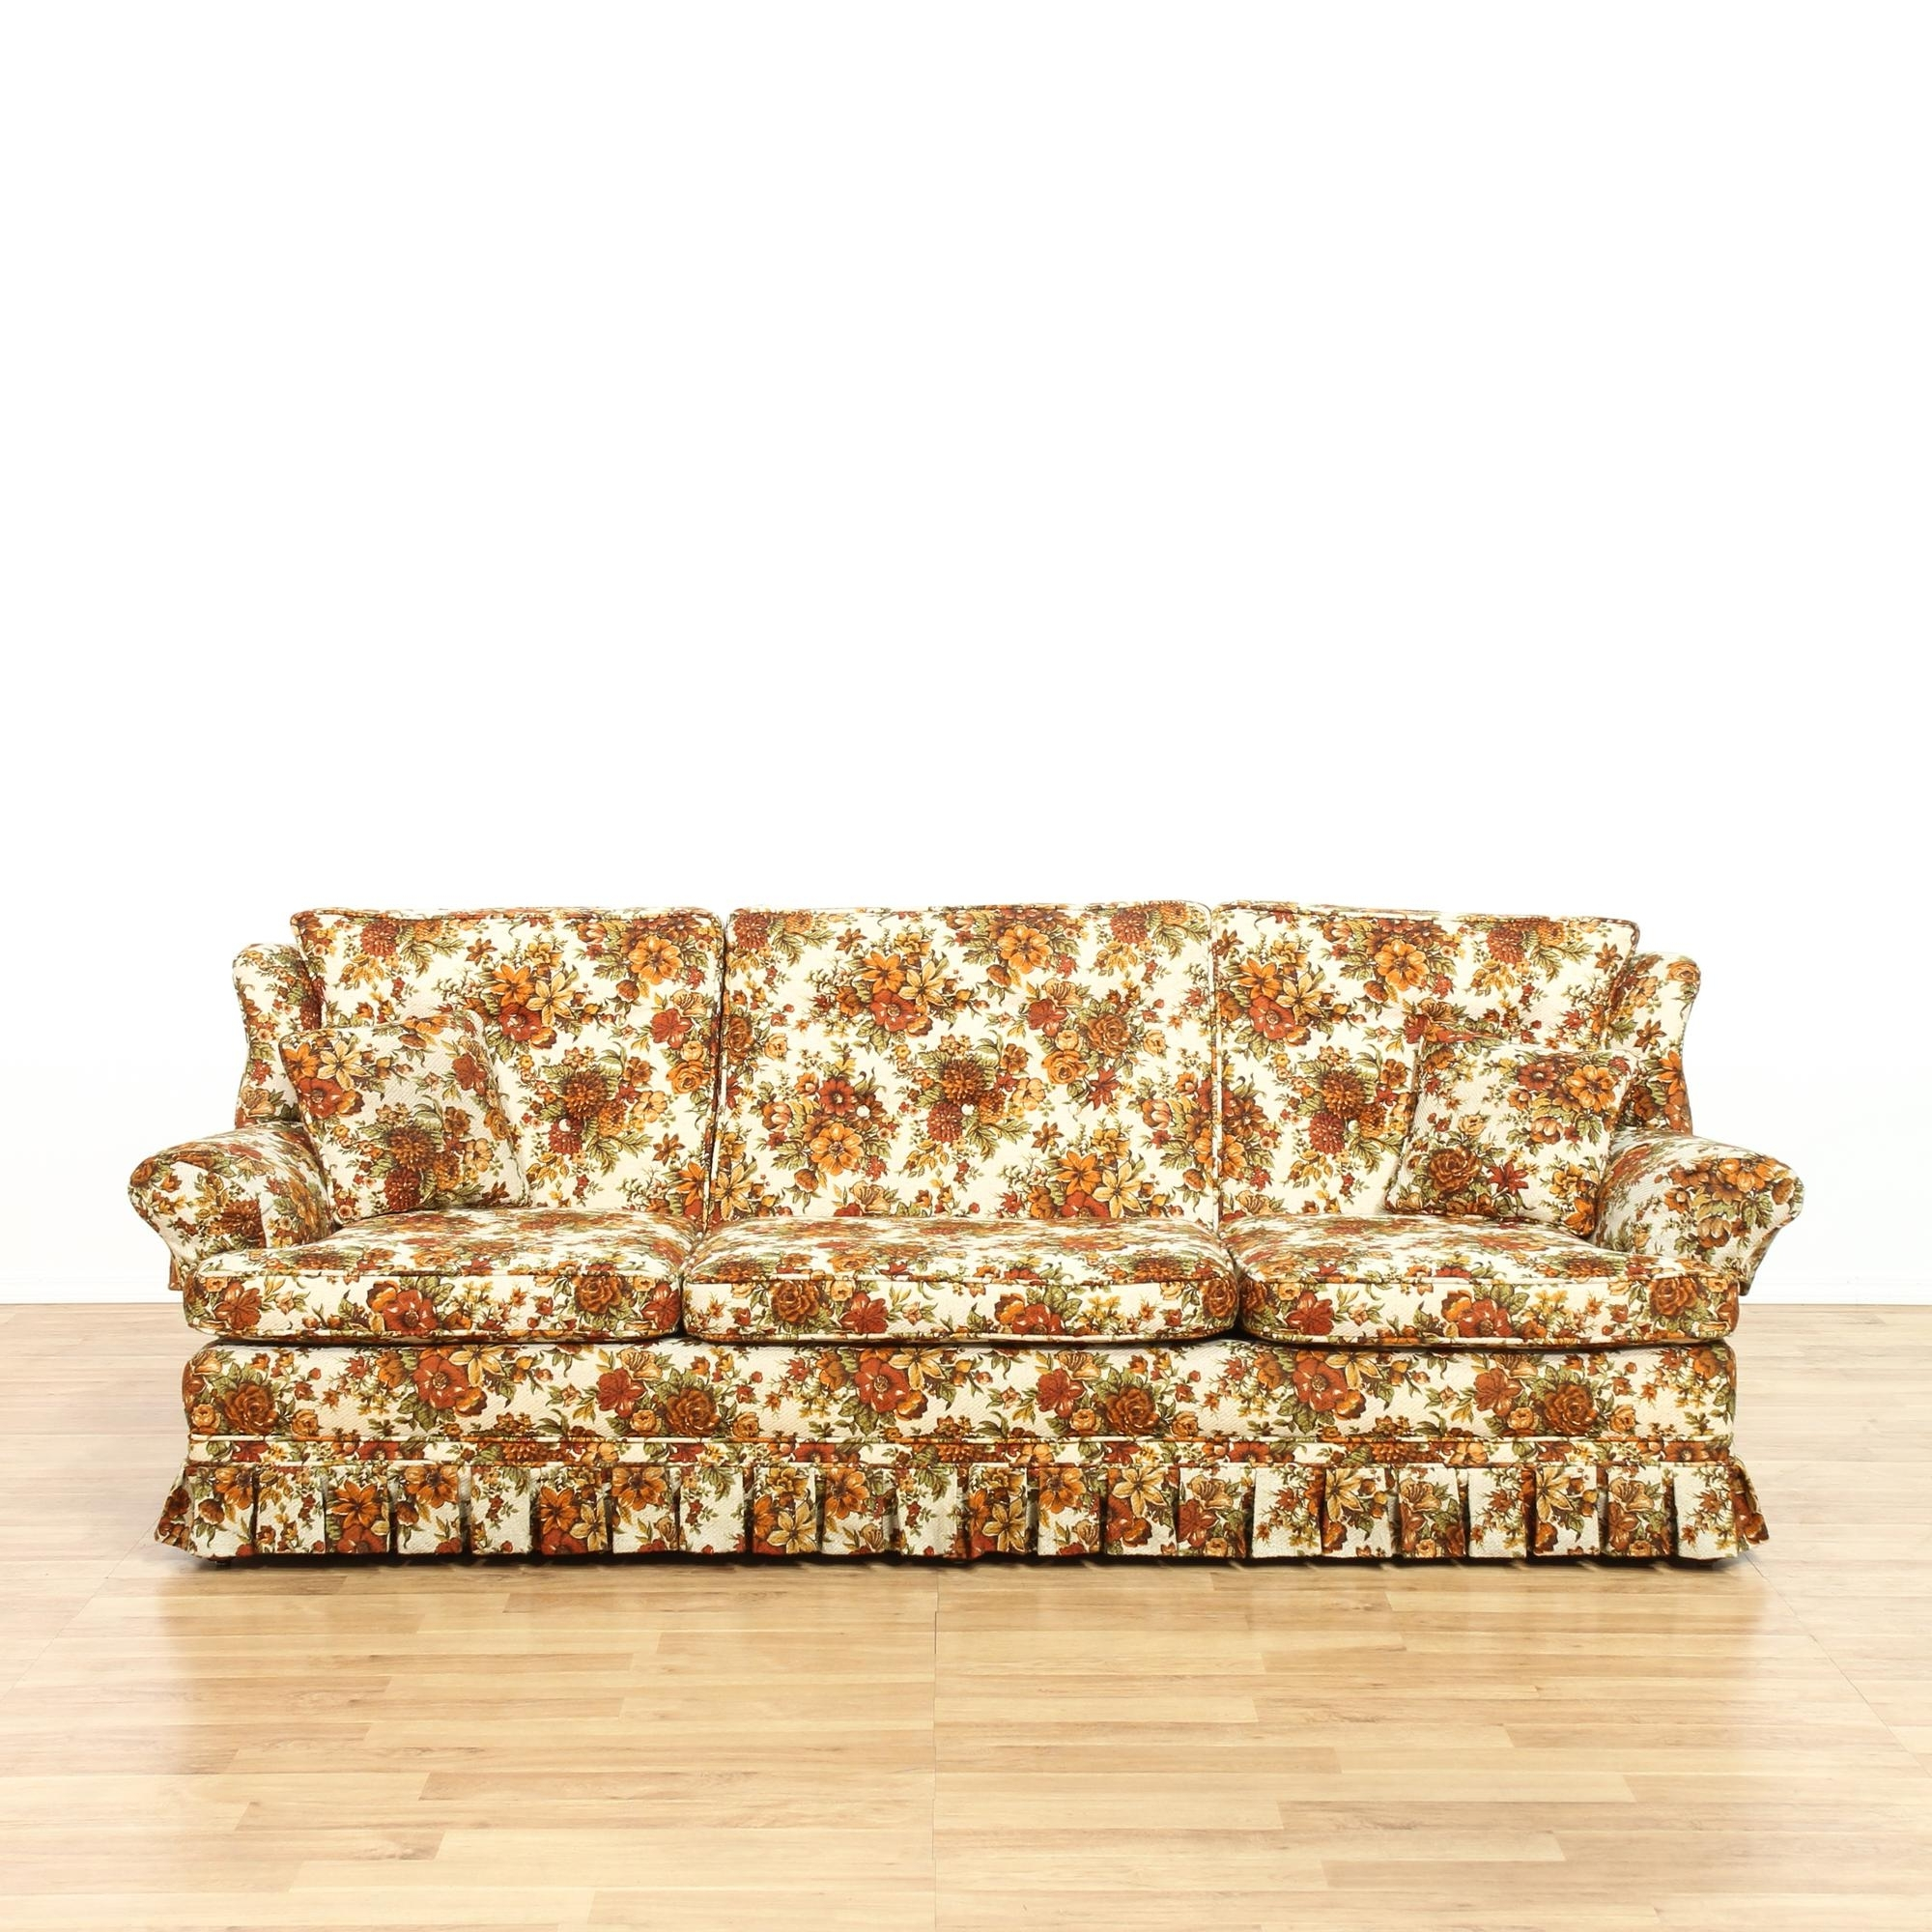 This Sofa Is Upholstered In An Orange Floral Pattern (View 20 of 20)